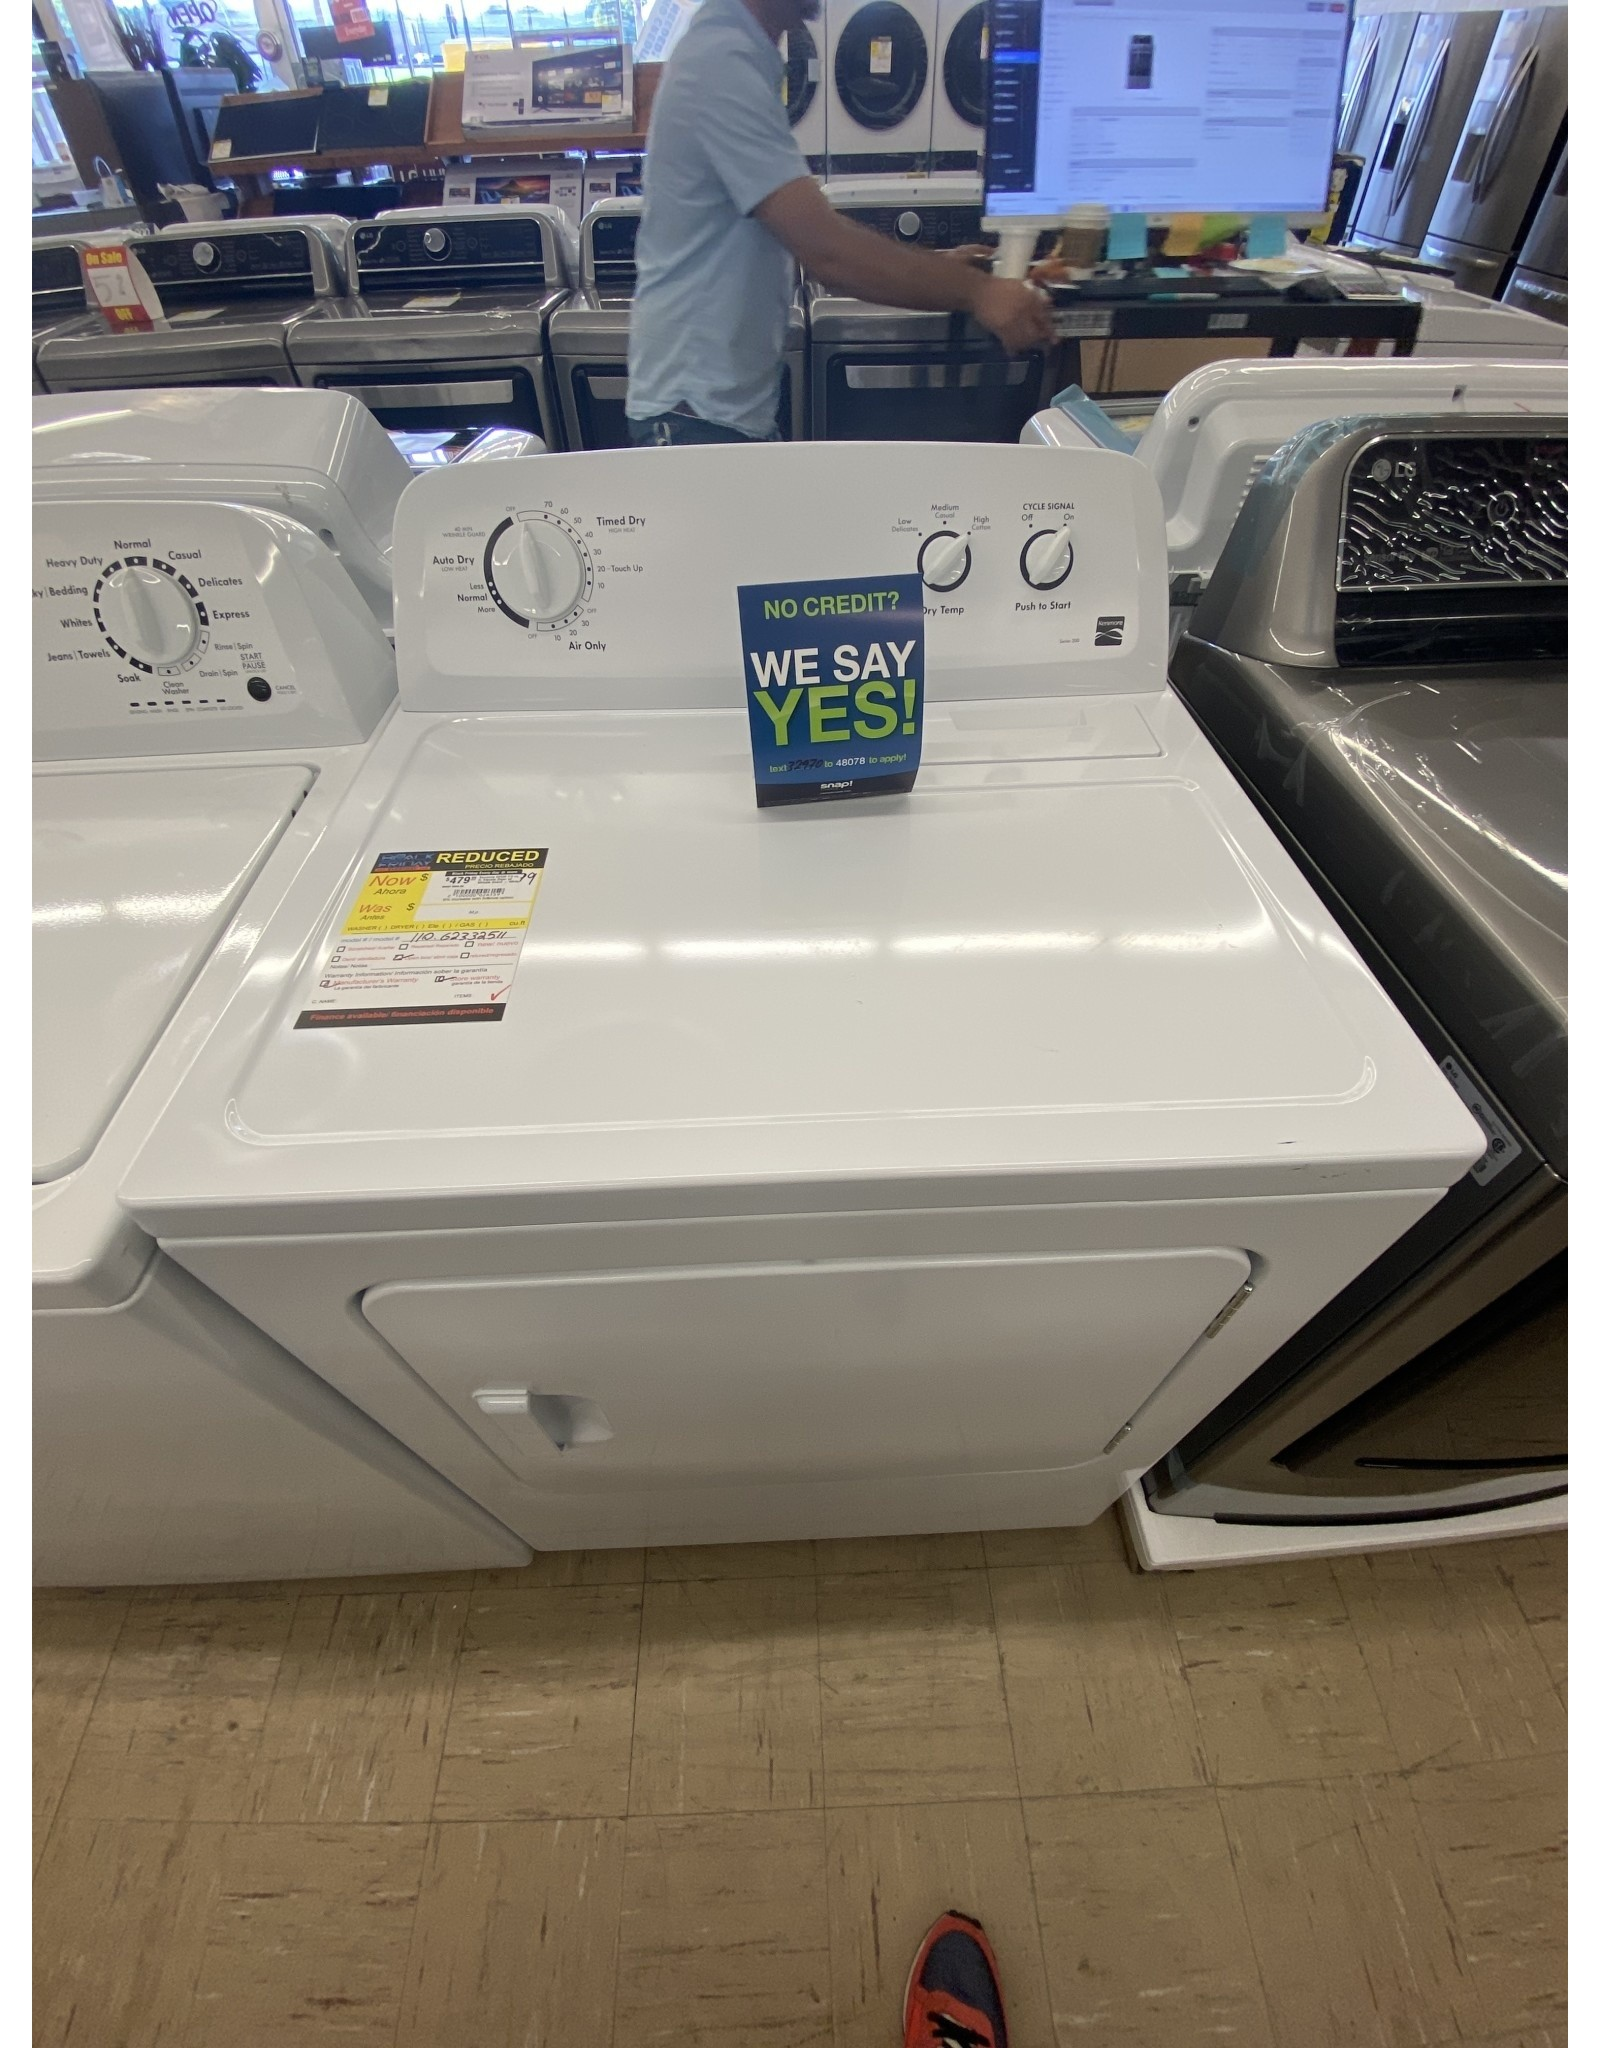 KENMORE Kenmore 62332 7.0 cu. ft. Electric Dryer w/ Wrinkle Guard - White